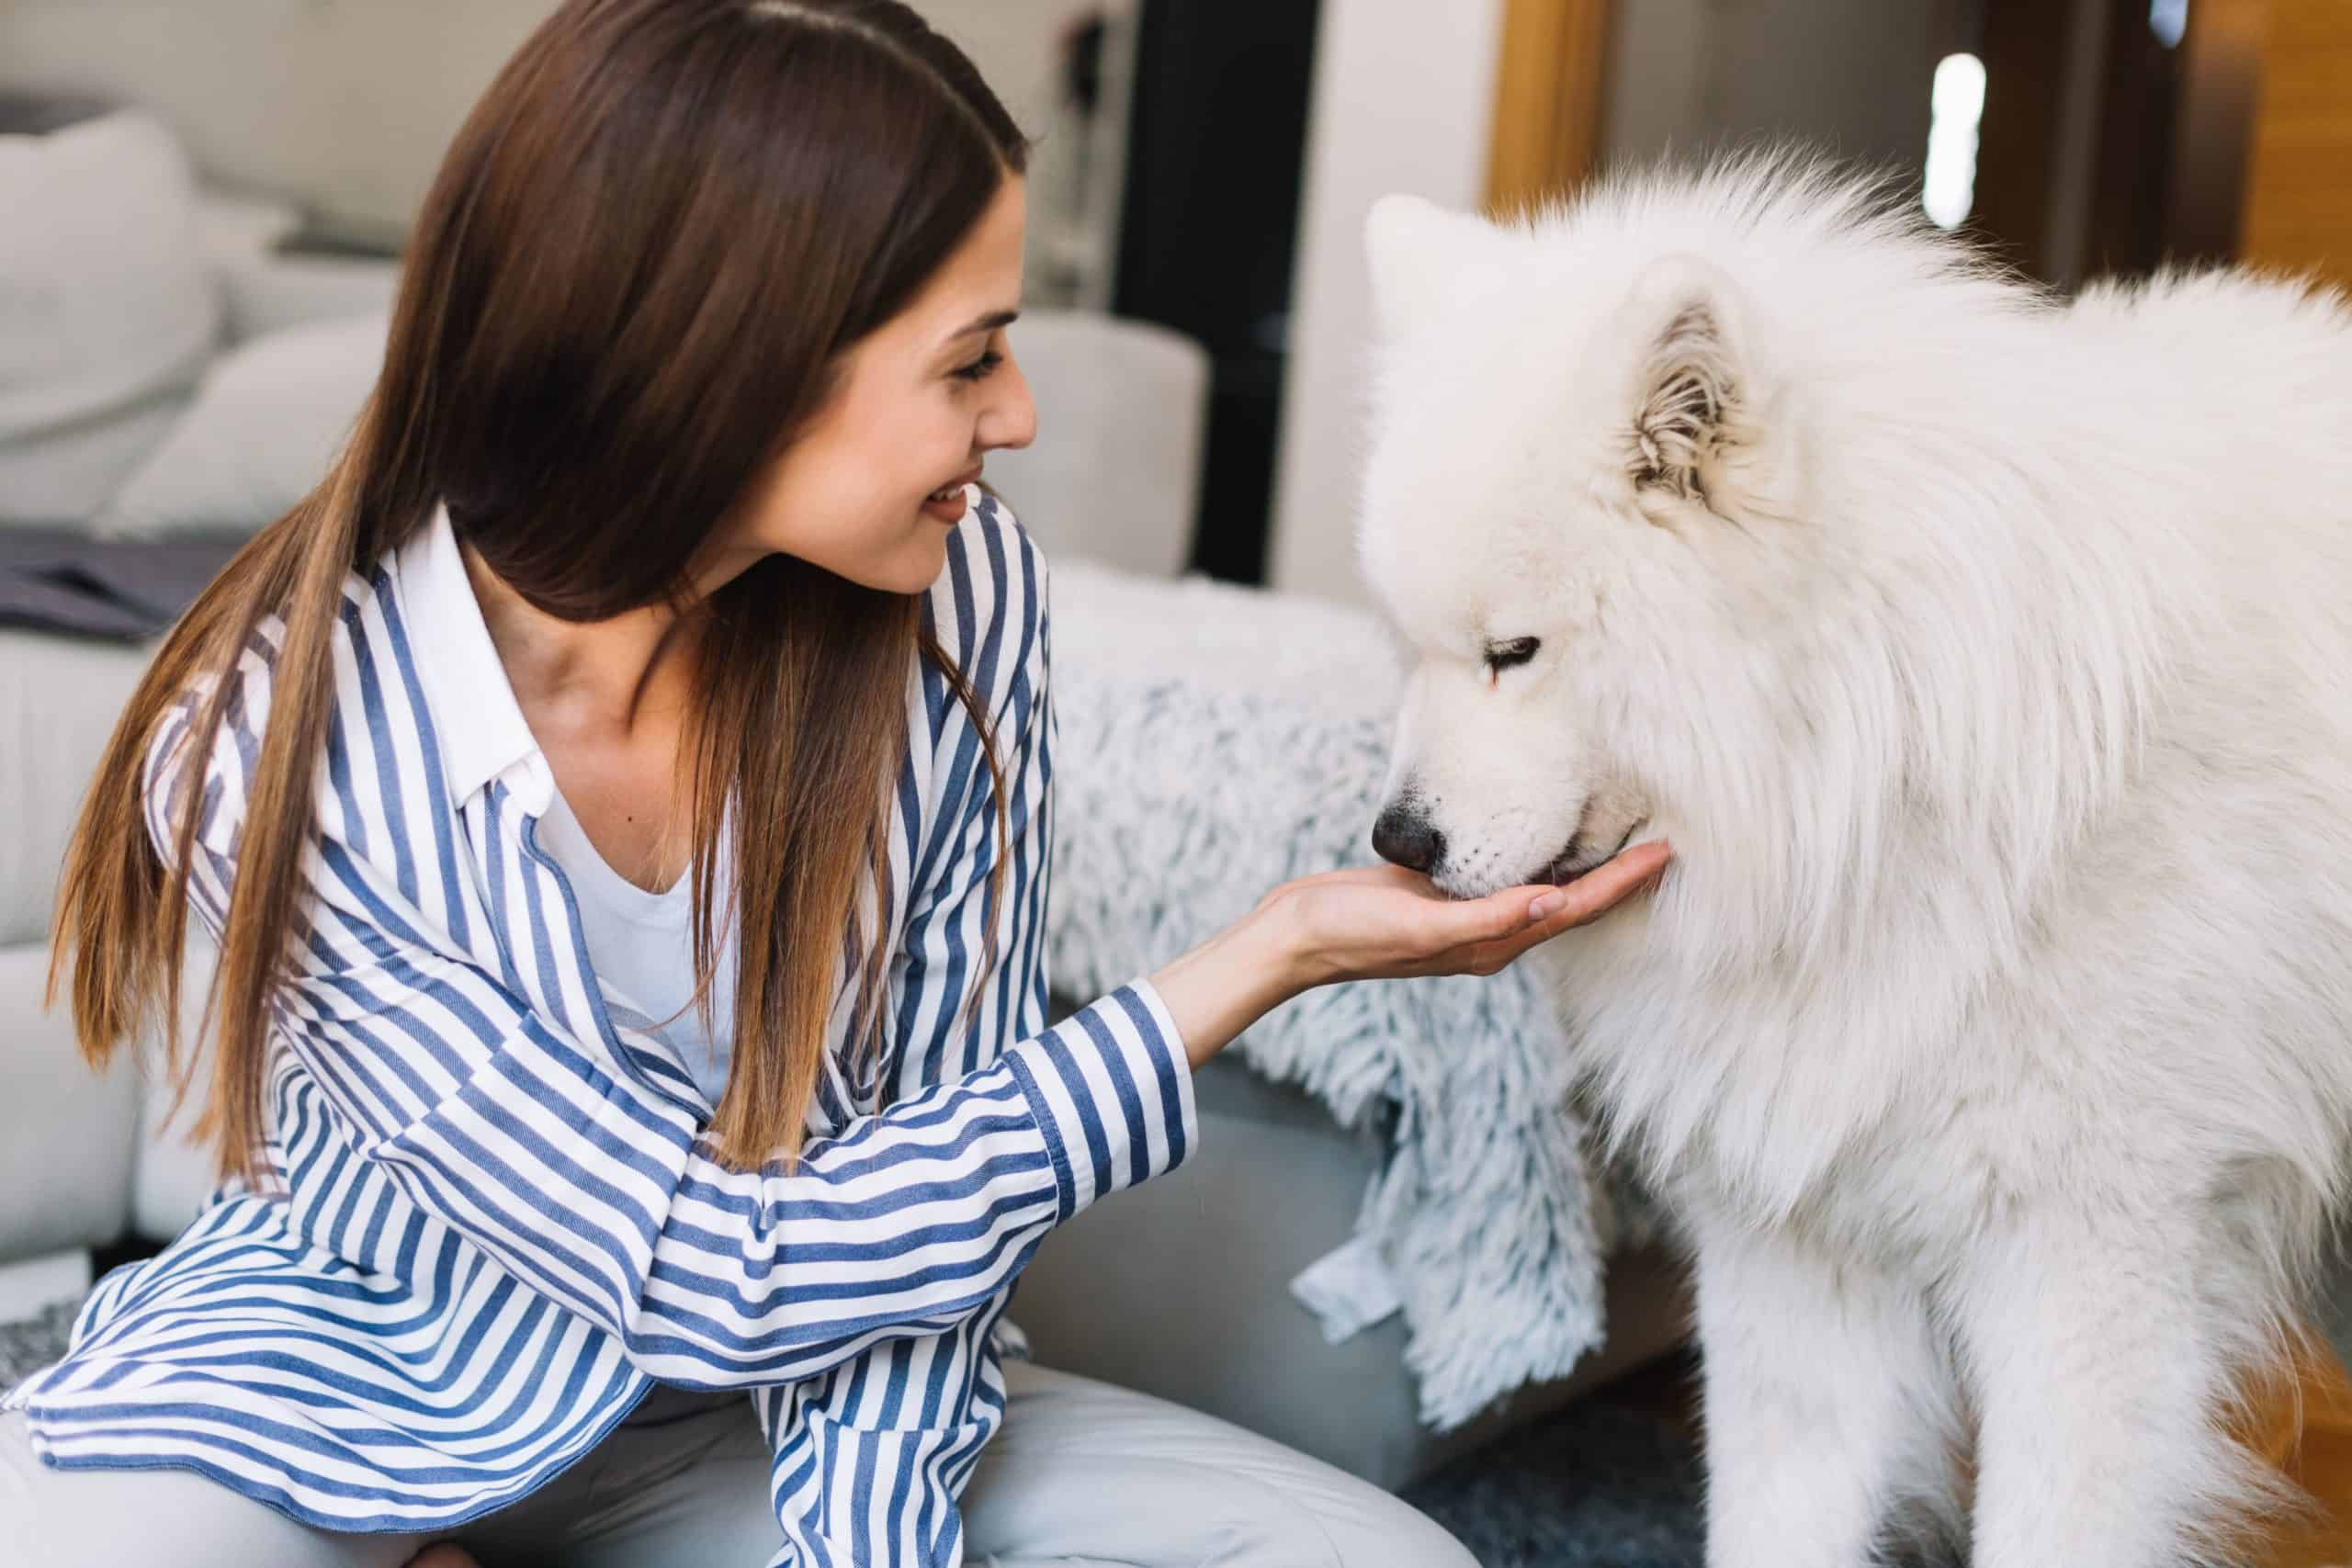 Woman feeds Samoyed from her hand. Samoyed owners are friendly.